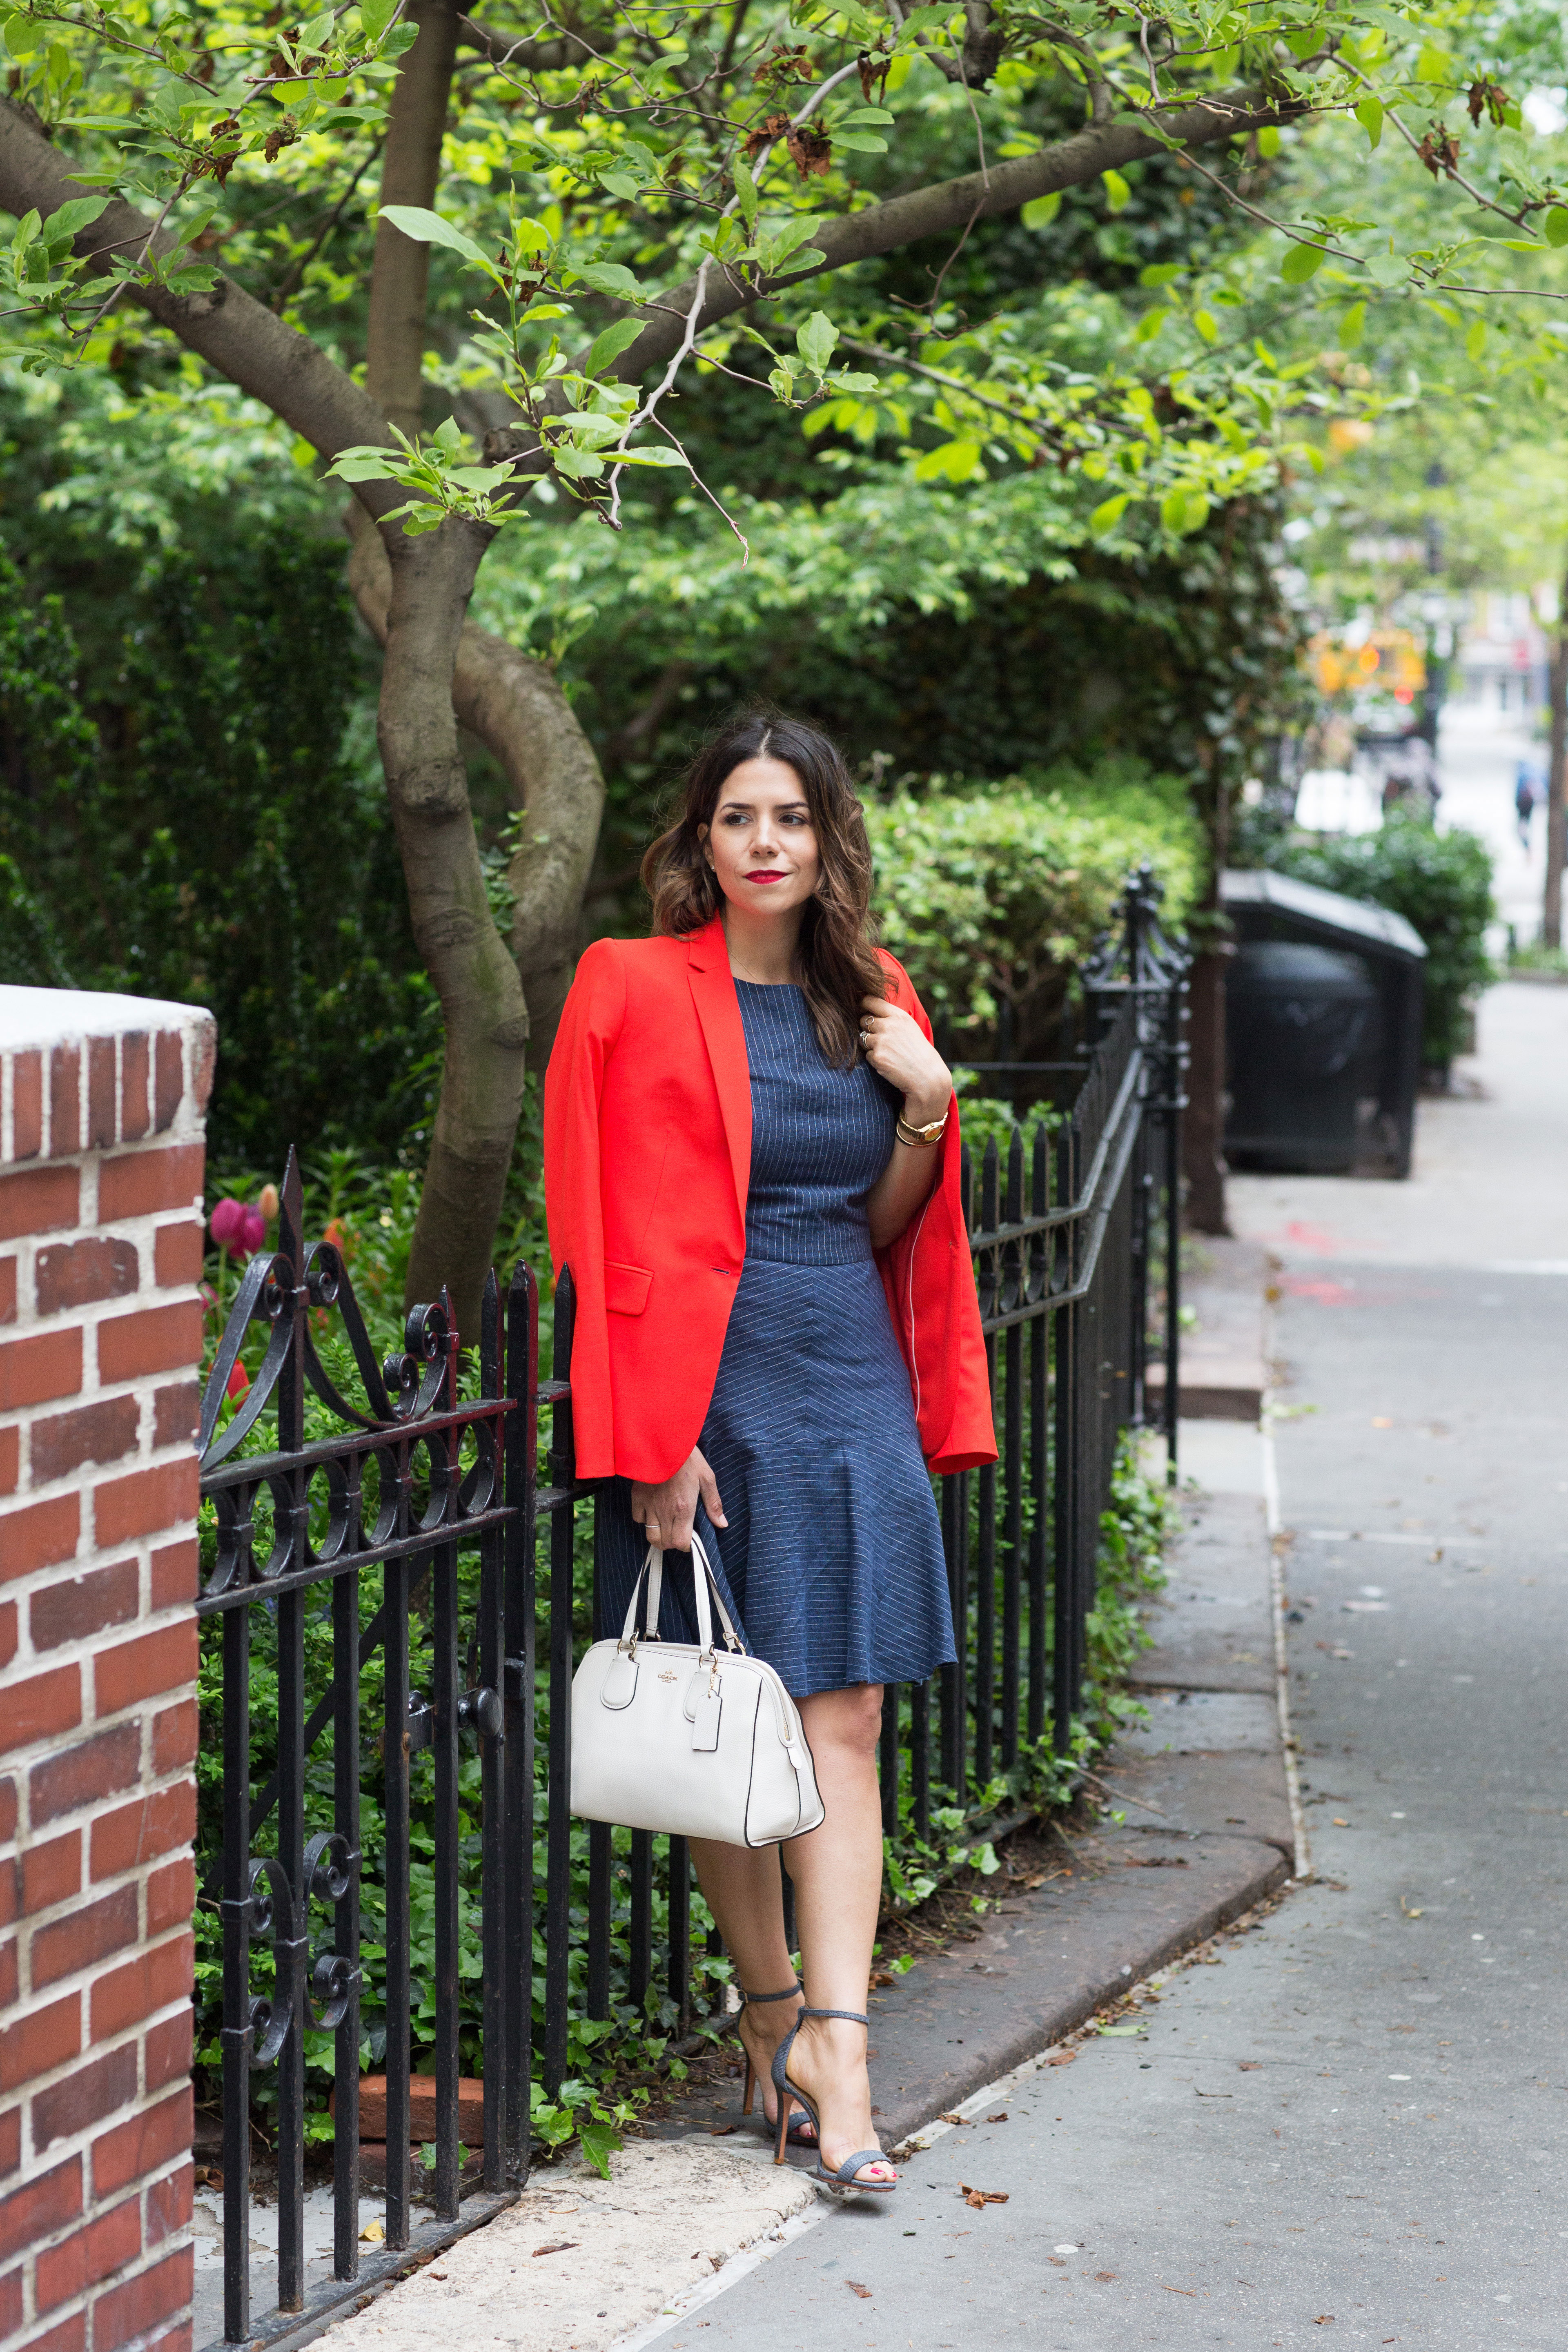 workwear-outfit-for-spring-wearing-Banana-Republic-Red-Blazer-with-denim-dress-and-white-coach-purse4